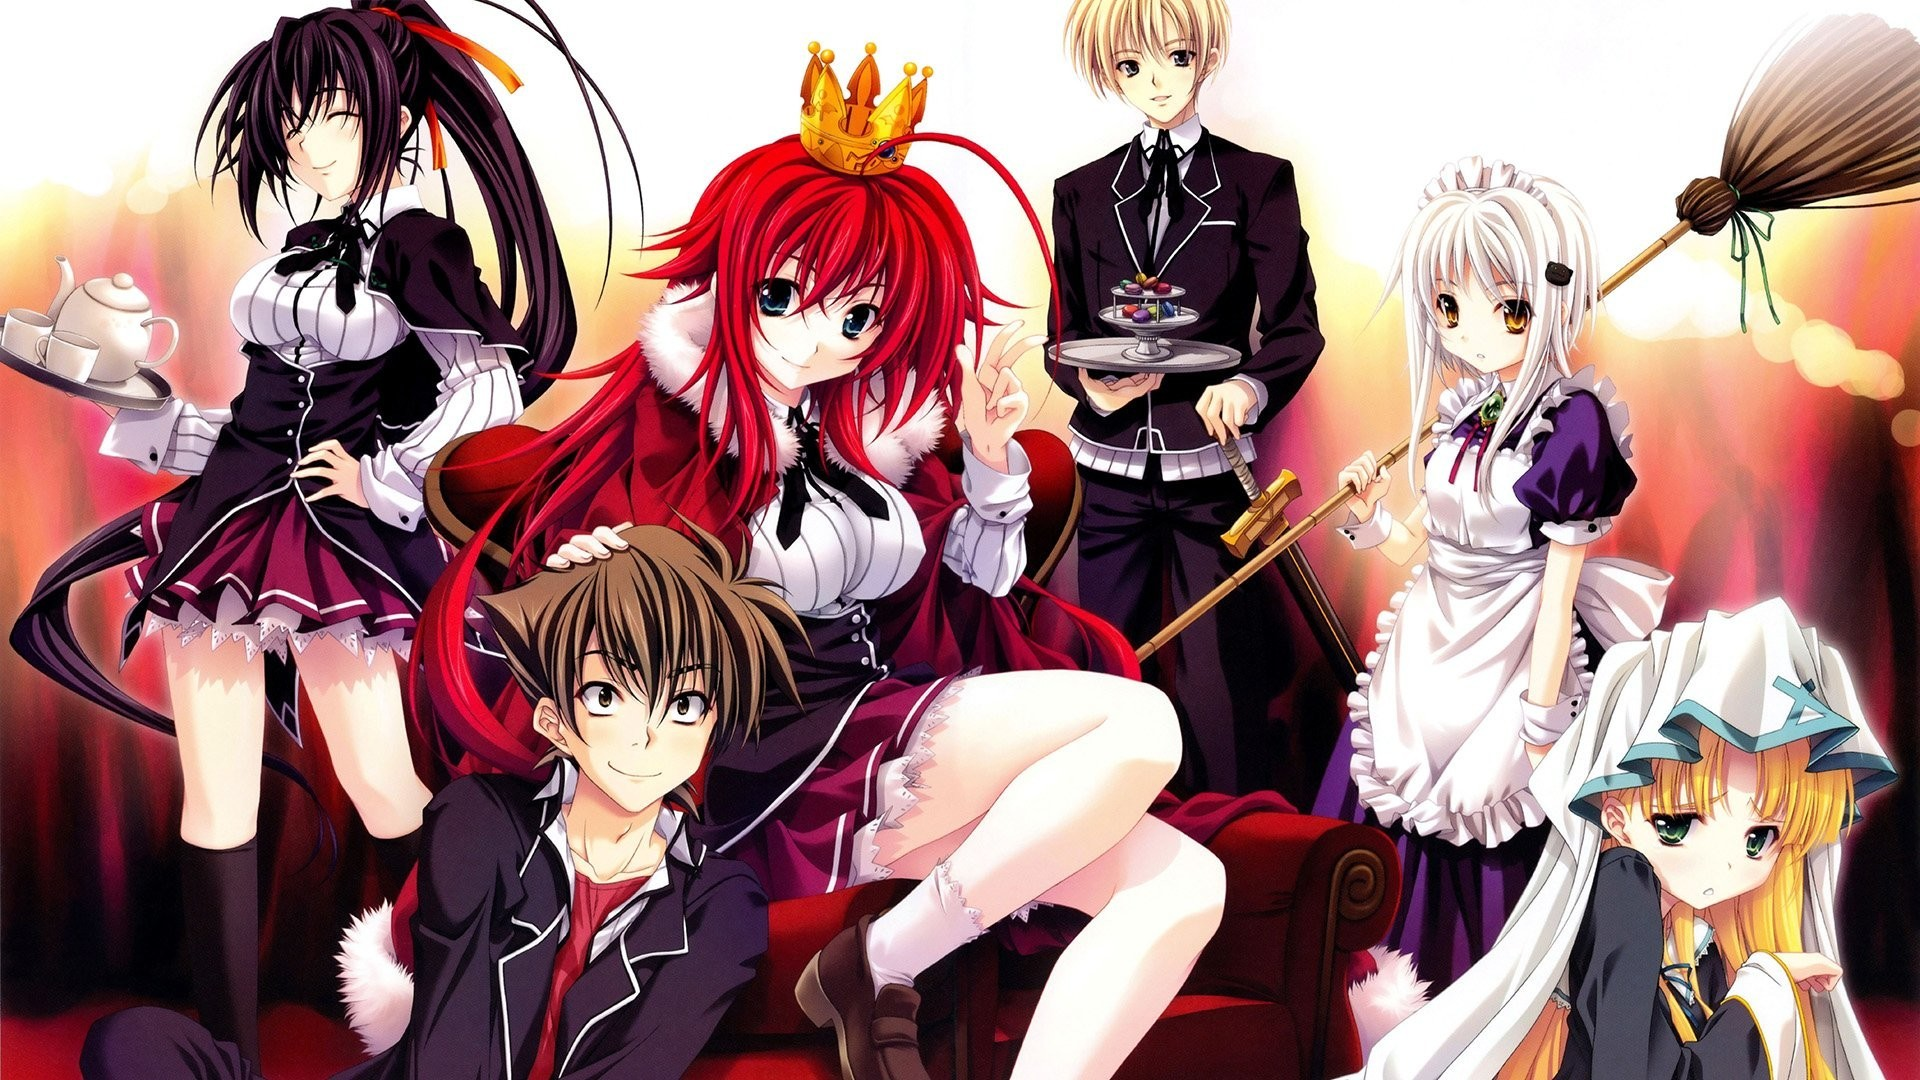 1920x1080, High School Dxd Rias Gremory Ââ - Highschool Dxd Wallpaper Full Hd - HD Wallpaper